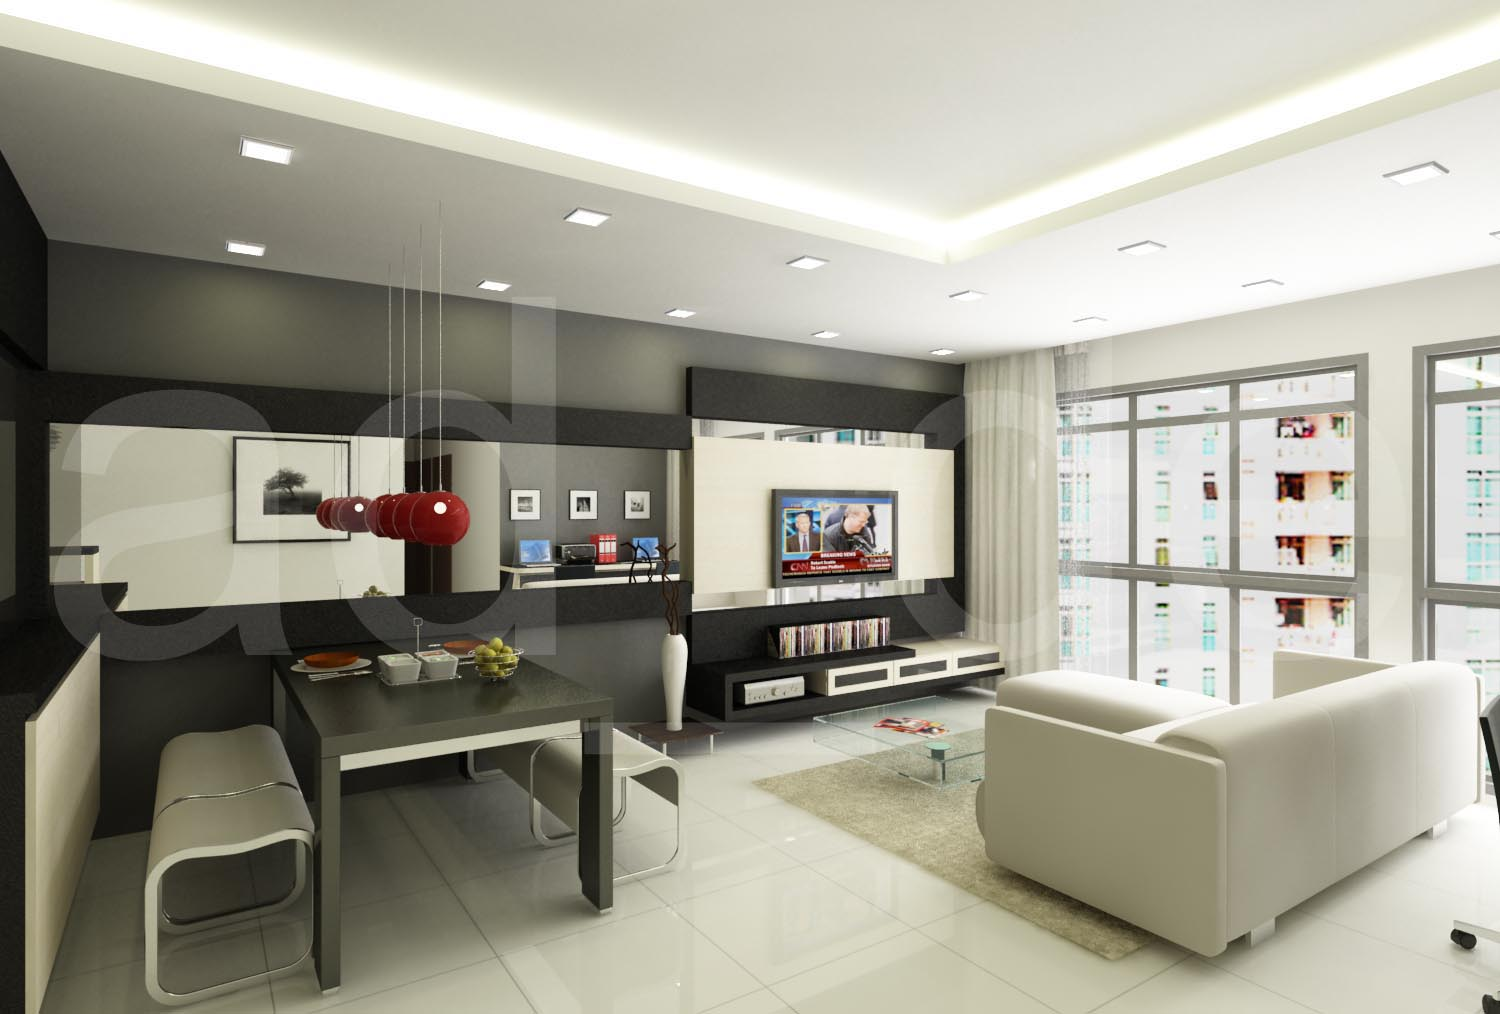 Condo interior design condominium interior design singapore - Interior Design Ideas Archives Vincent Interior Blog